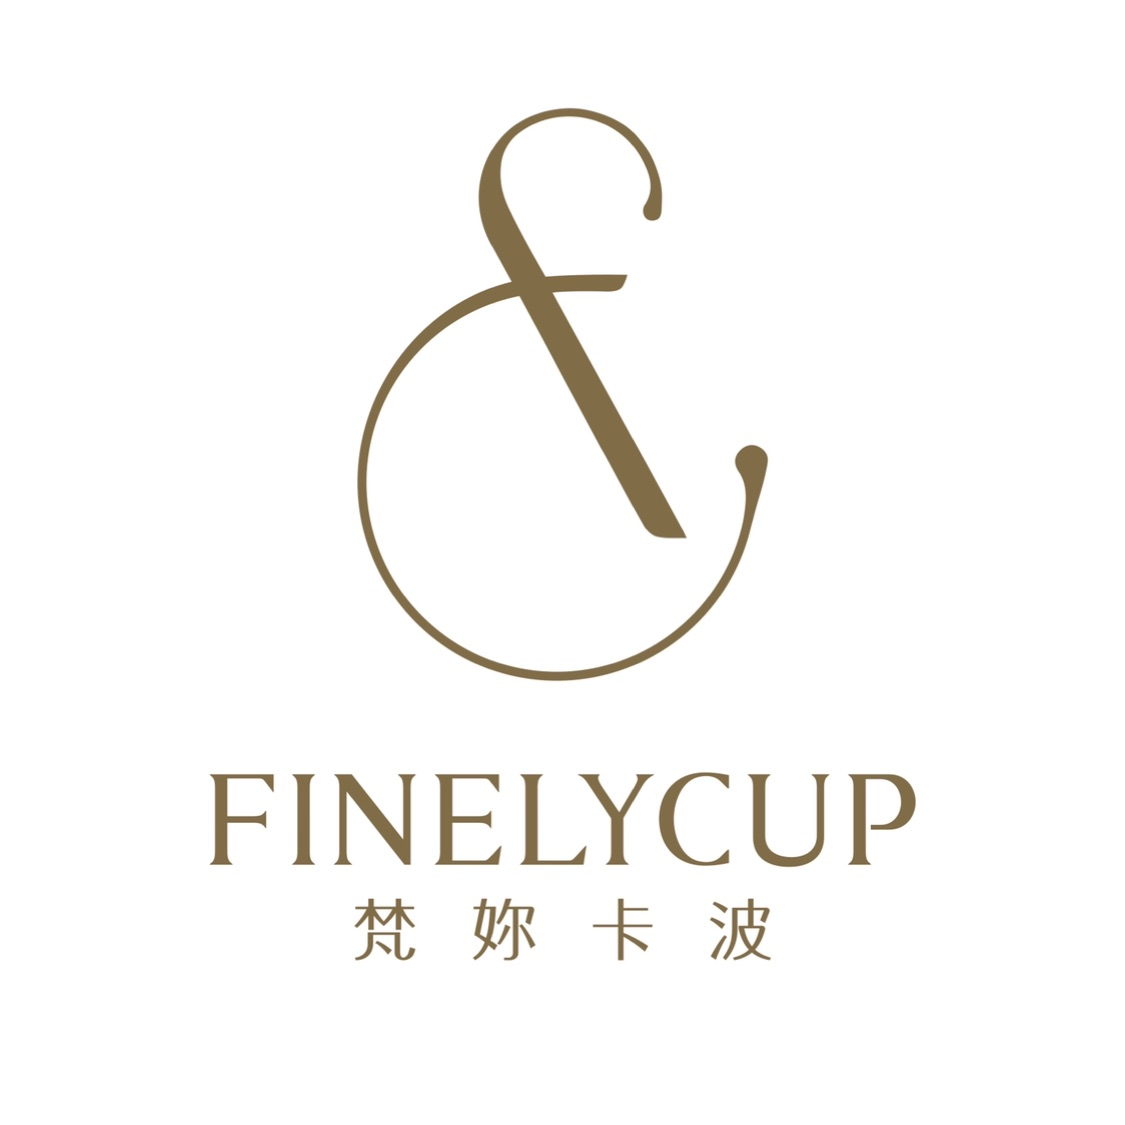 FINELYCUP